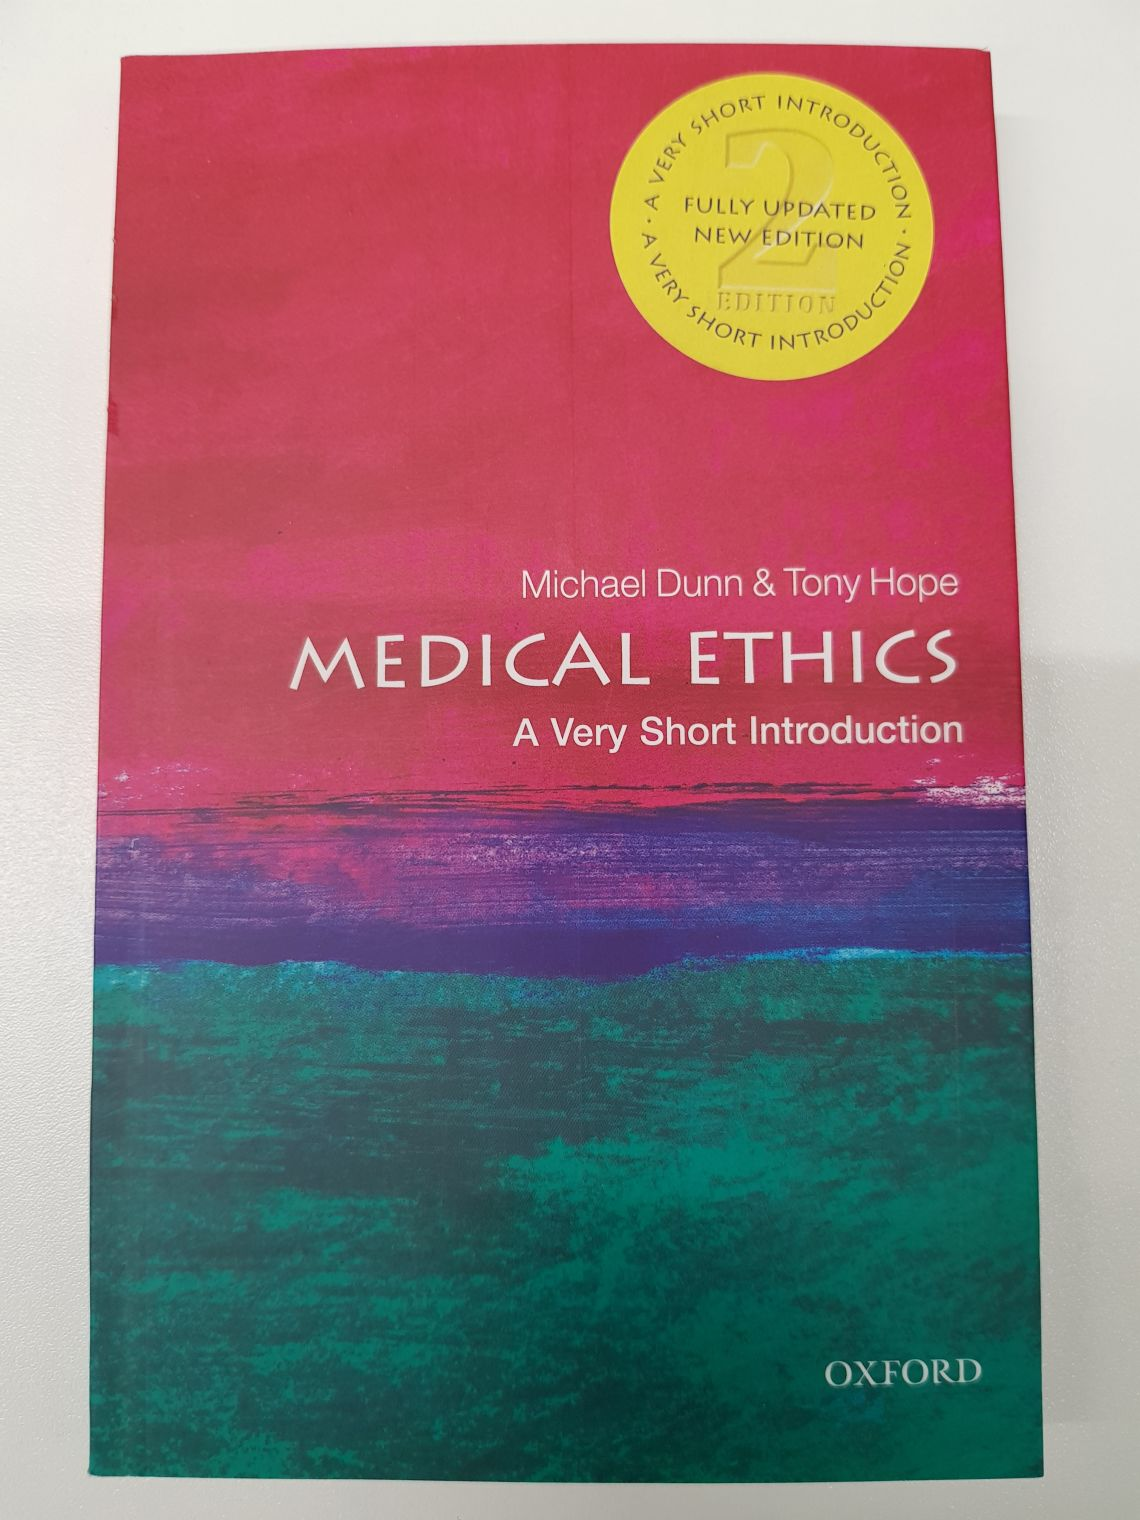 The issue of medical ethics, from thorny moral questions such as euthanasia and the morality of killing to political questions such as the fair distribution of health care resources, is rarely out of today's media. This area of ethics covers a wide range of issues, from mental health to reproductive medicine, as well as including management issues such as resource allocation, and has proven to hold enduring interest for the general public as well as the medical practitioner. This new edition explores the ethical reasoning we can use to approach medical ethics, introducing the most important 'tools' of ethical reasoning, and discussing how argument, thought experiments, and intuition can be combined in the consideration of medical ethics. Considering its practical application, Michael Dunn and Tony Hope explore how medical ethics supports health professionals through the growing use of ethics expertise in clinical settings. They also contemplate the increasingly important place of medical ethics in the wider social context, particularly in this age of globalization, not only in healthcare practice, but also policy, discussions in the media, pressure group and activism settings, and in legal judgments.